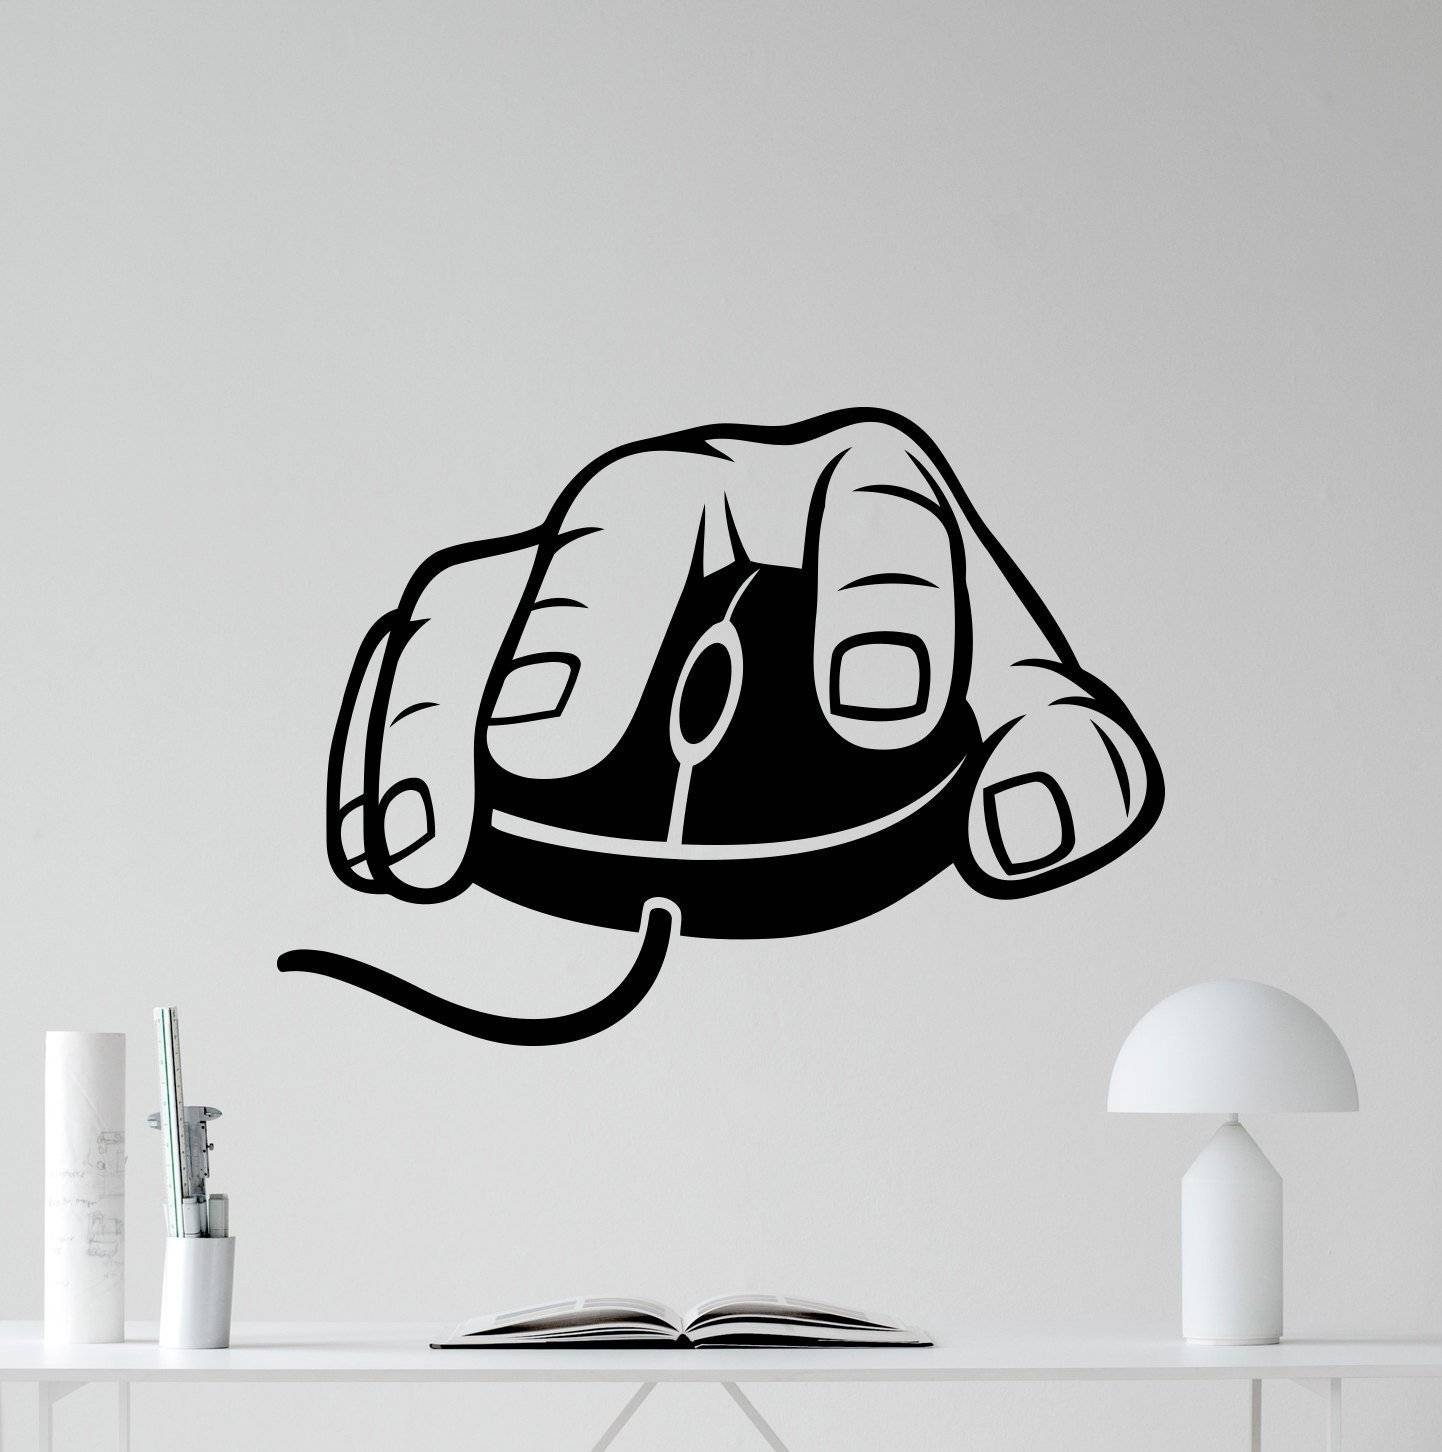 Aliexpress : Buy Computer Mouse Wall Decal Gaming Gamer Video With Most Popular Video Game Wall Art (View 1 of 30)